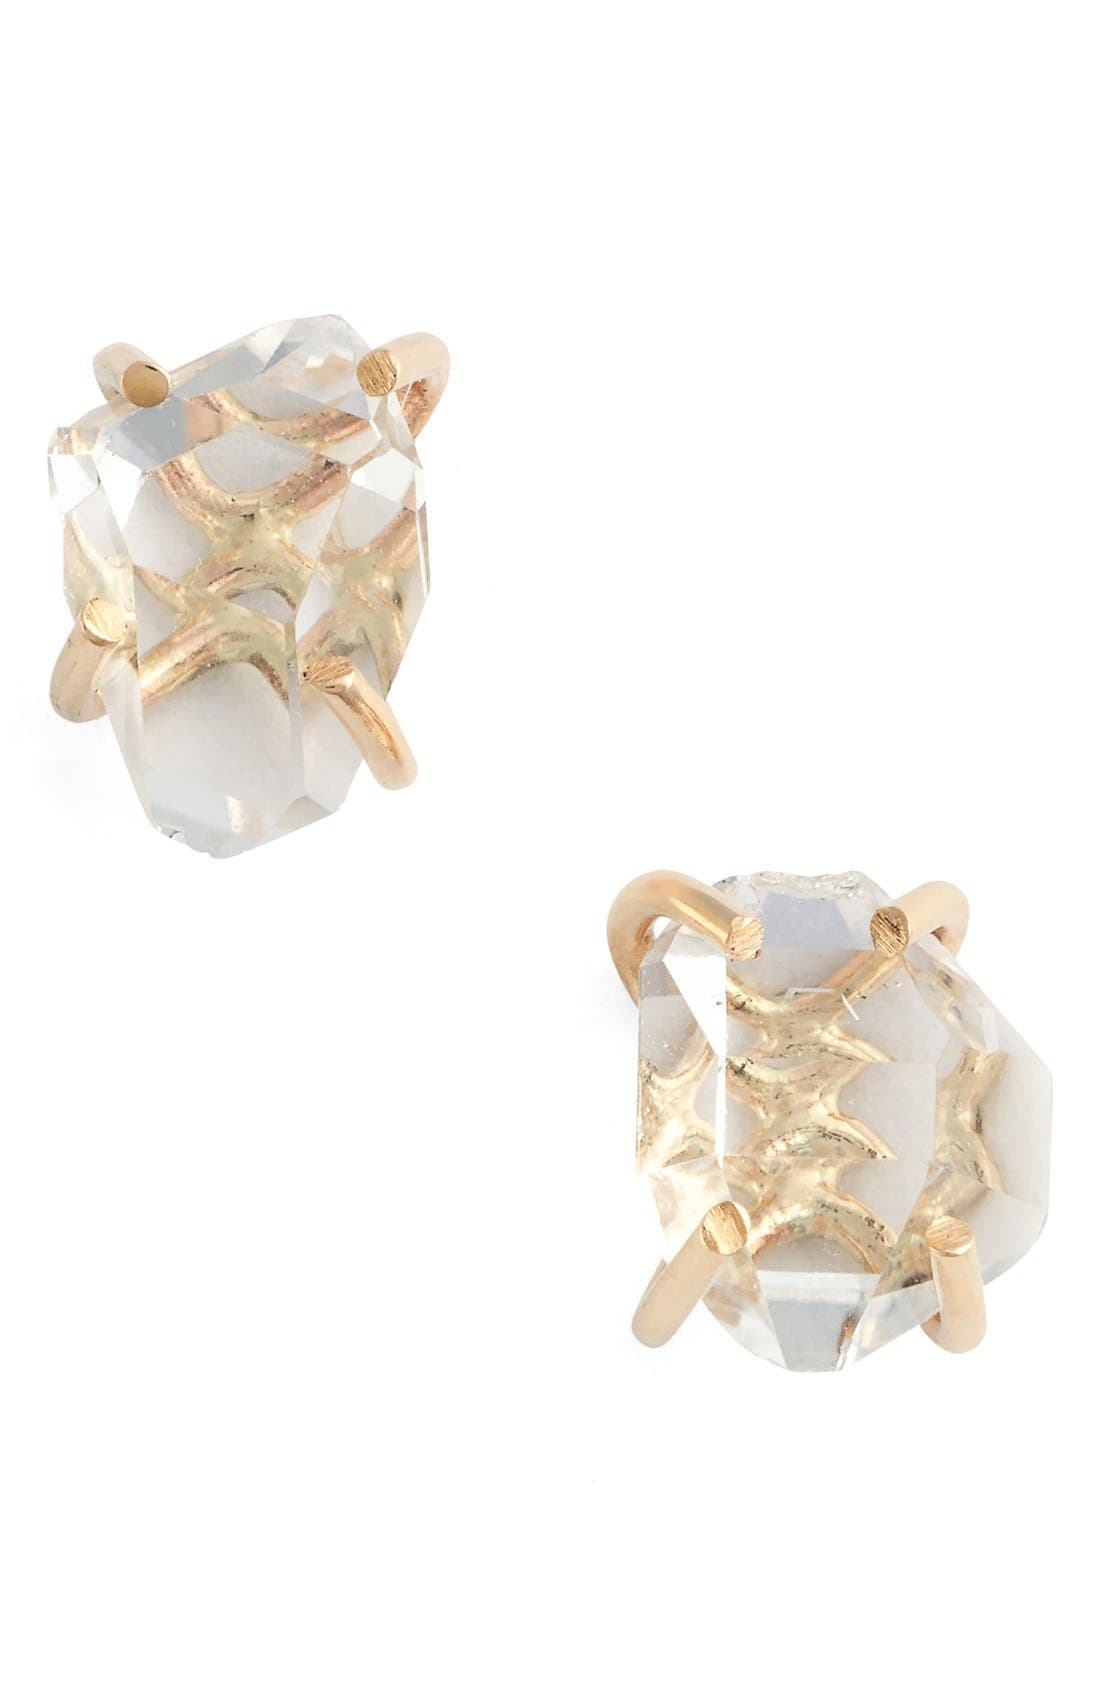 MELISSA JOY MANNING Herkimer Stud Earrings